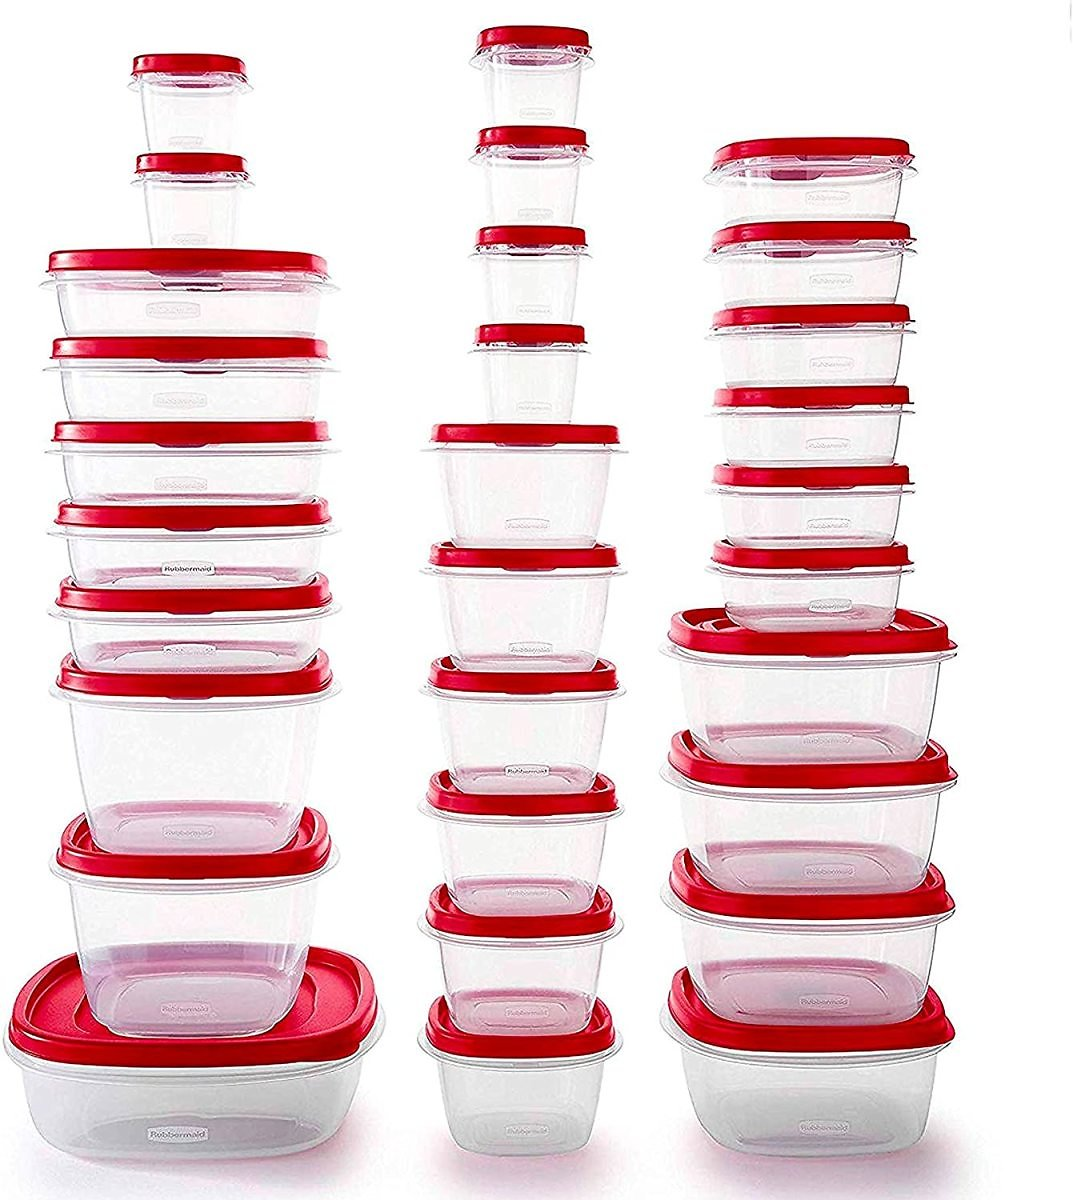 Rubbermaid Easy Find Vented Lids Food Storage Containers, Set of 30 (60 Pieces Total)